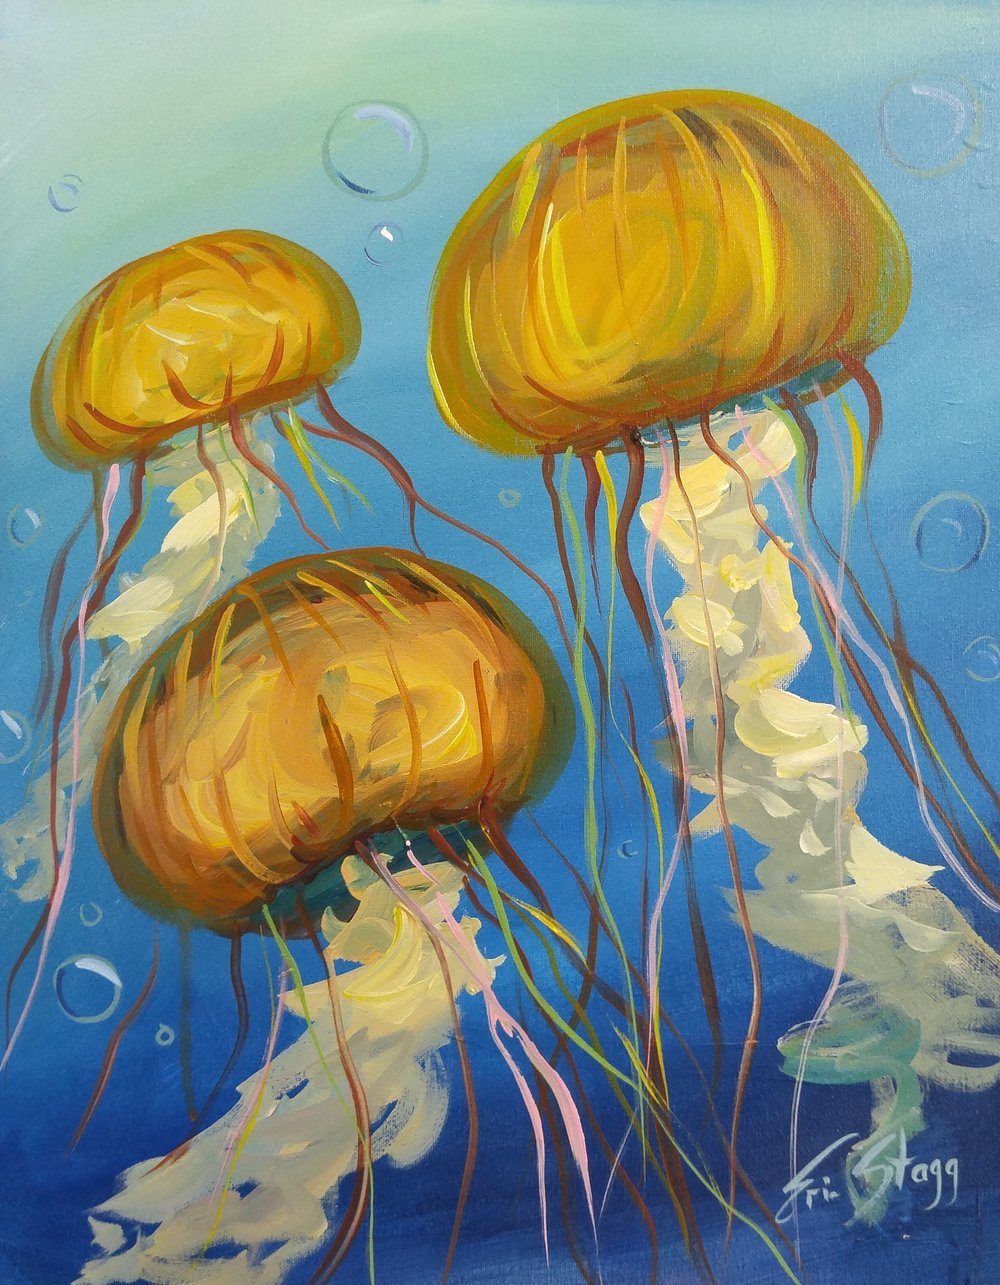 Jellyfish - Level: Easy, Time: Unrated